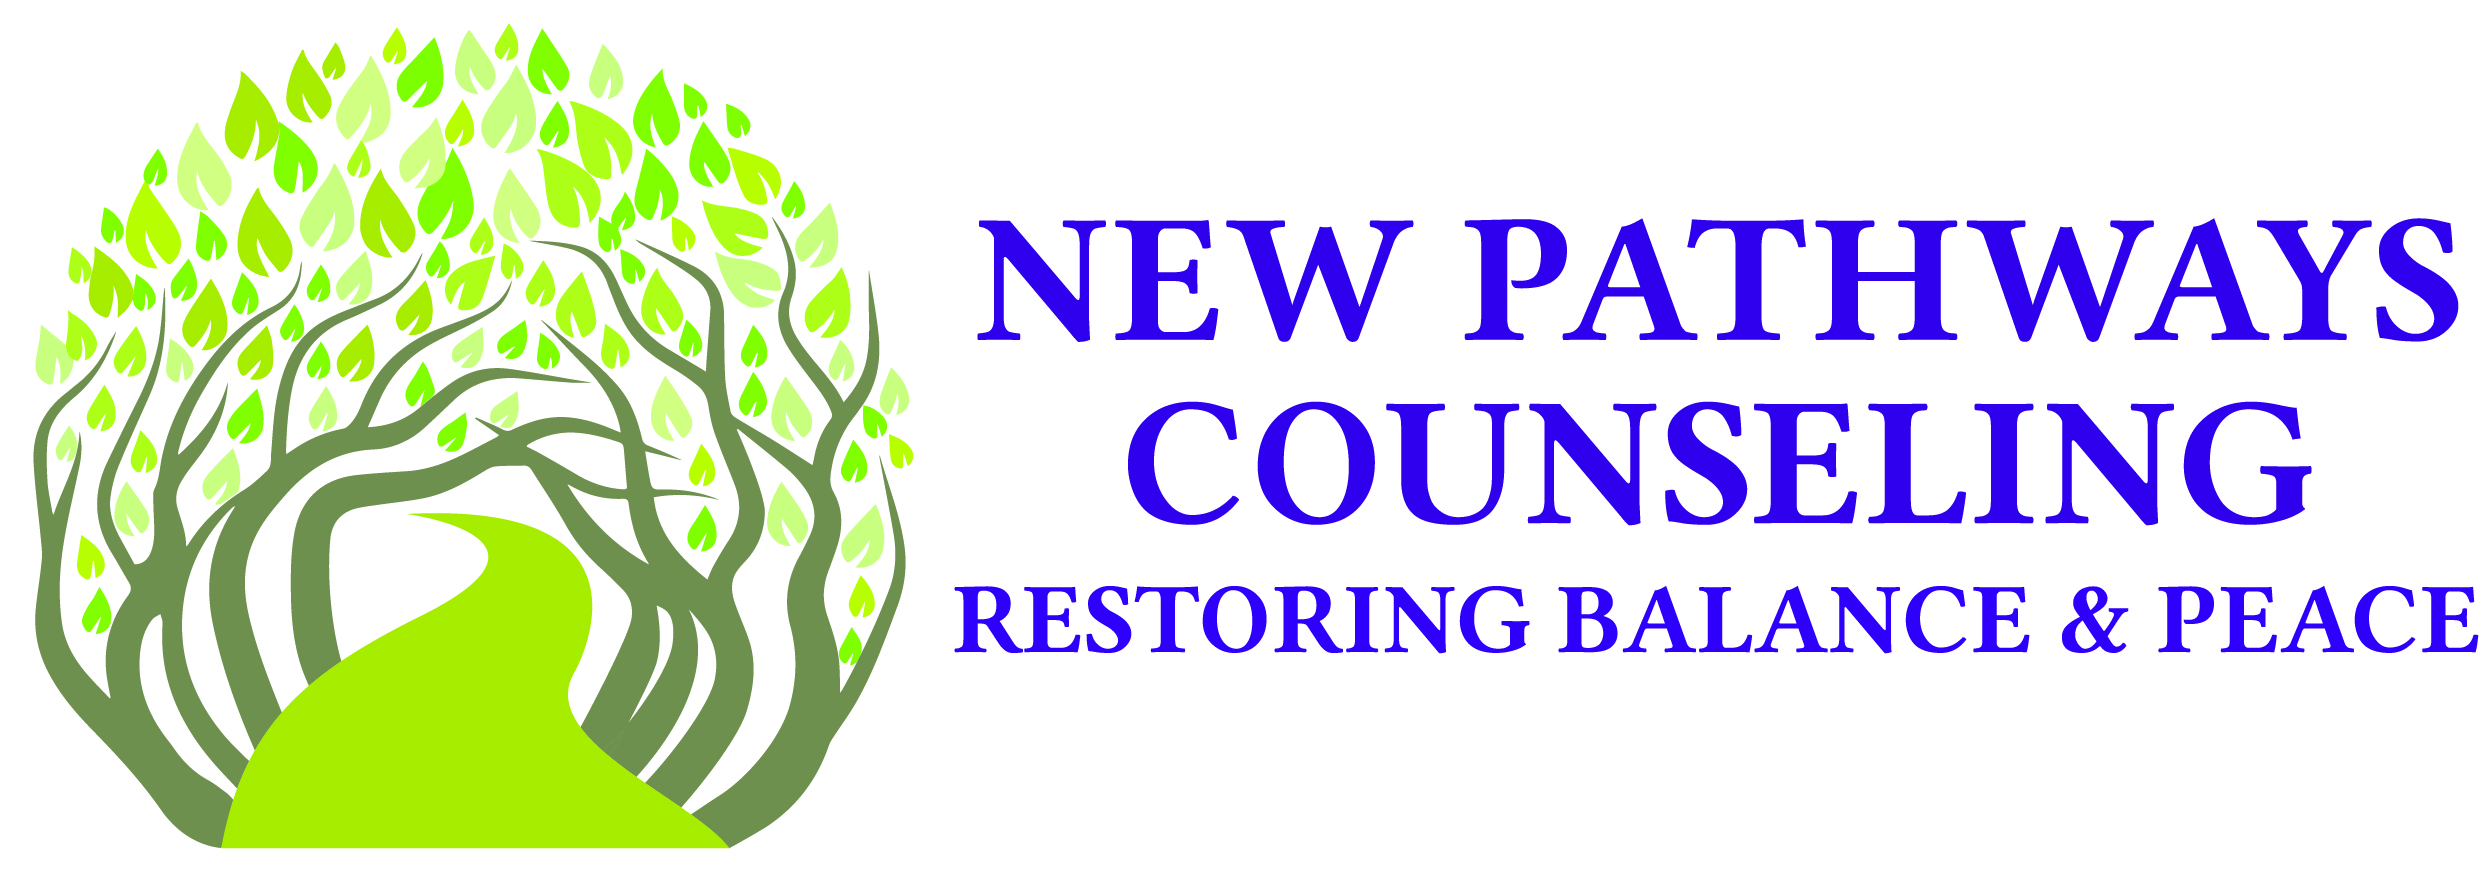 New Pathways Counseling